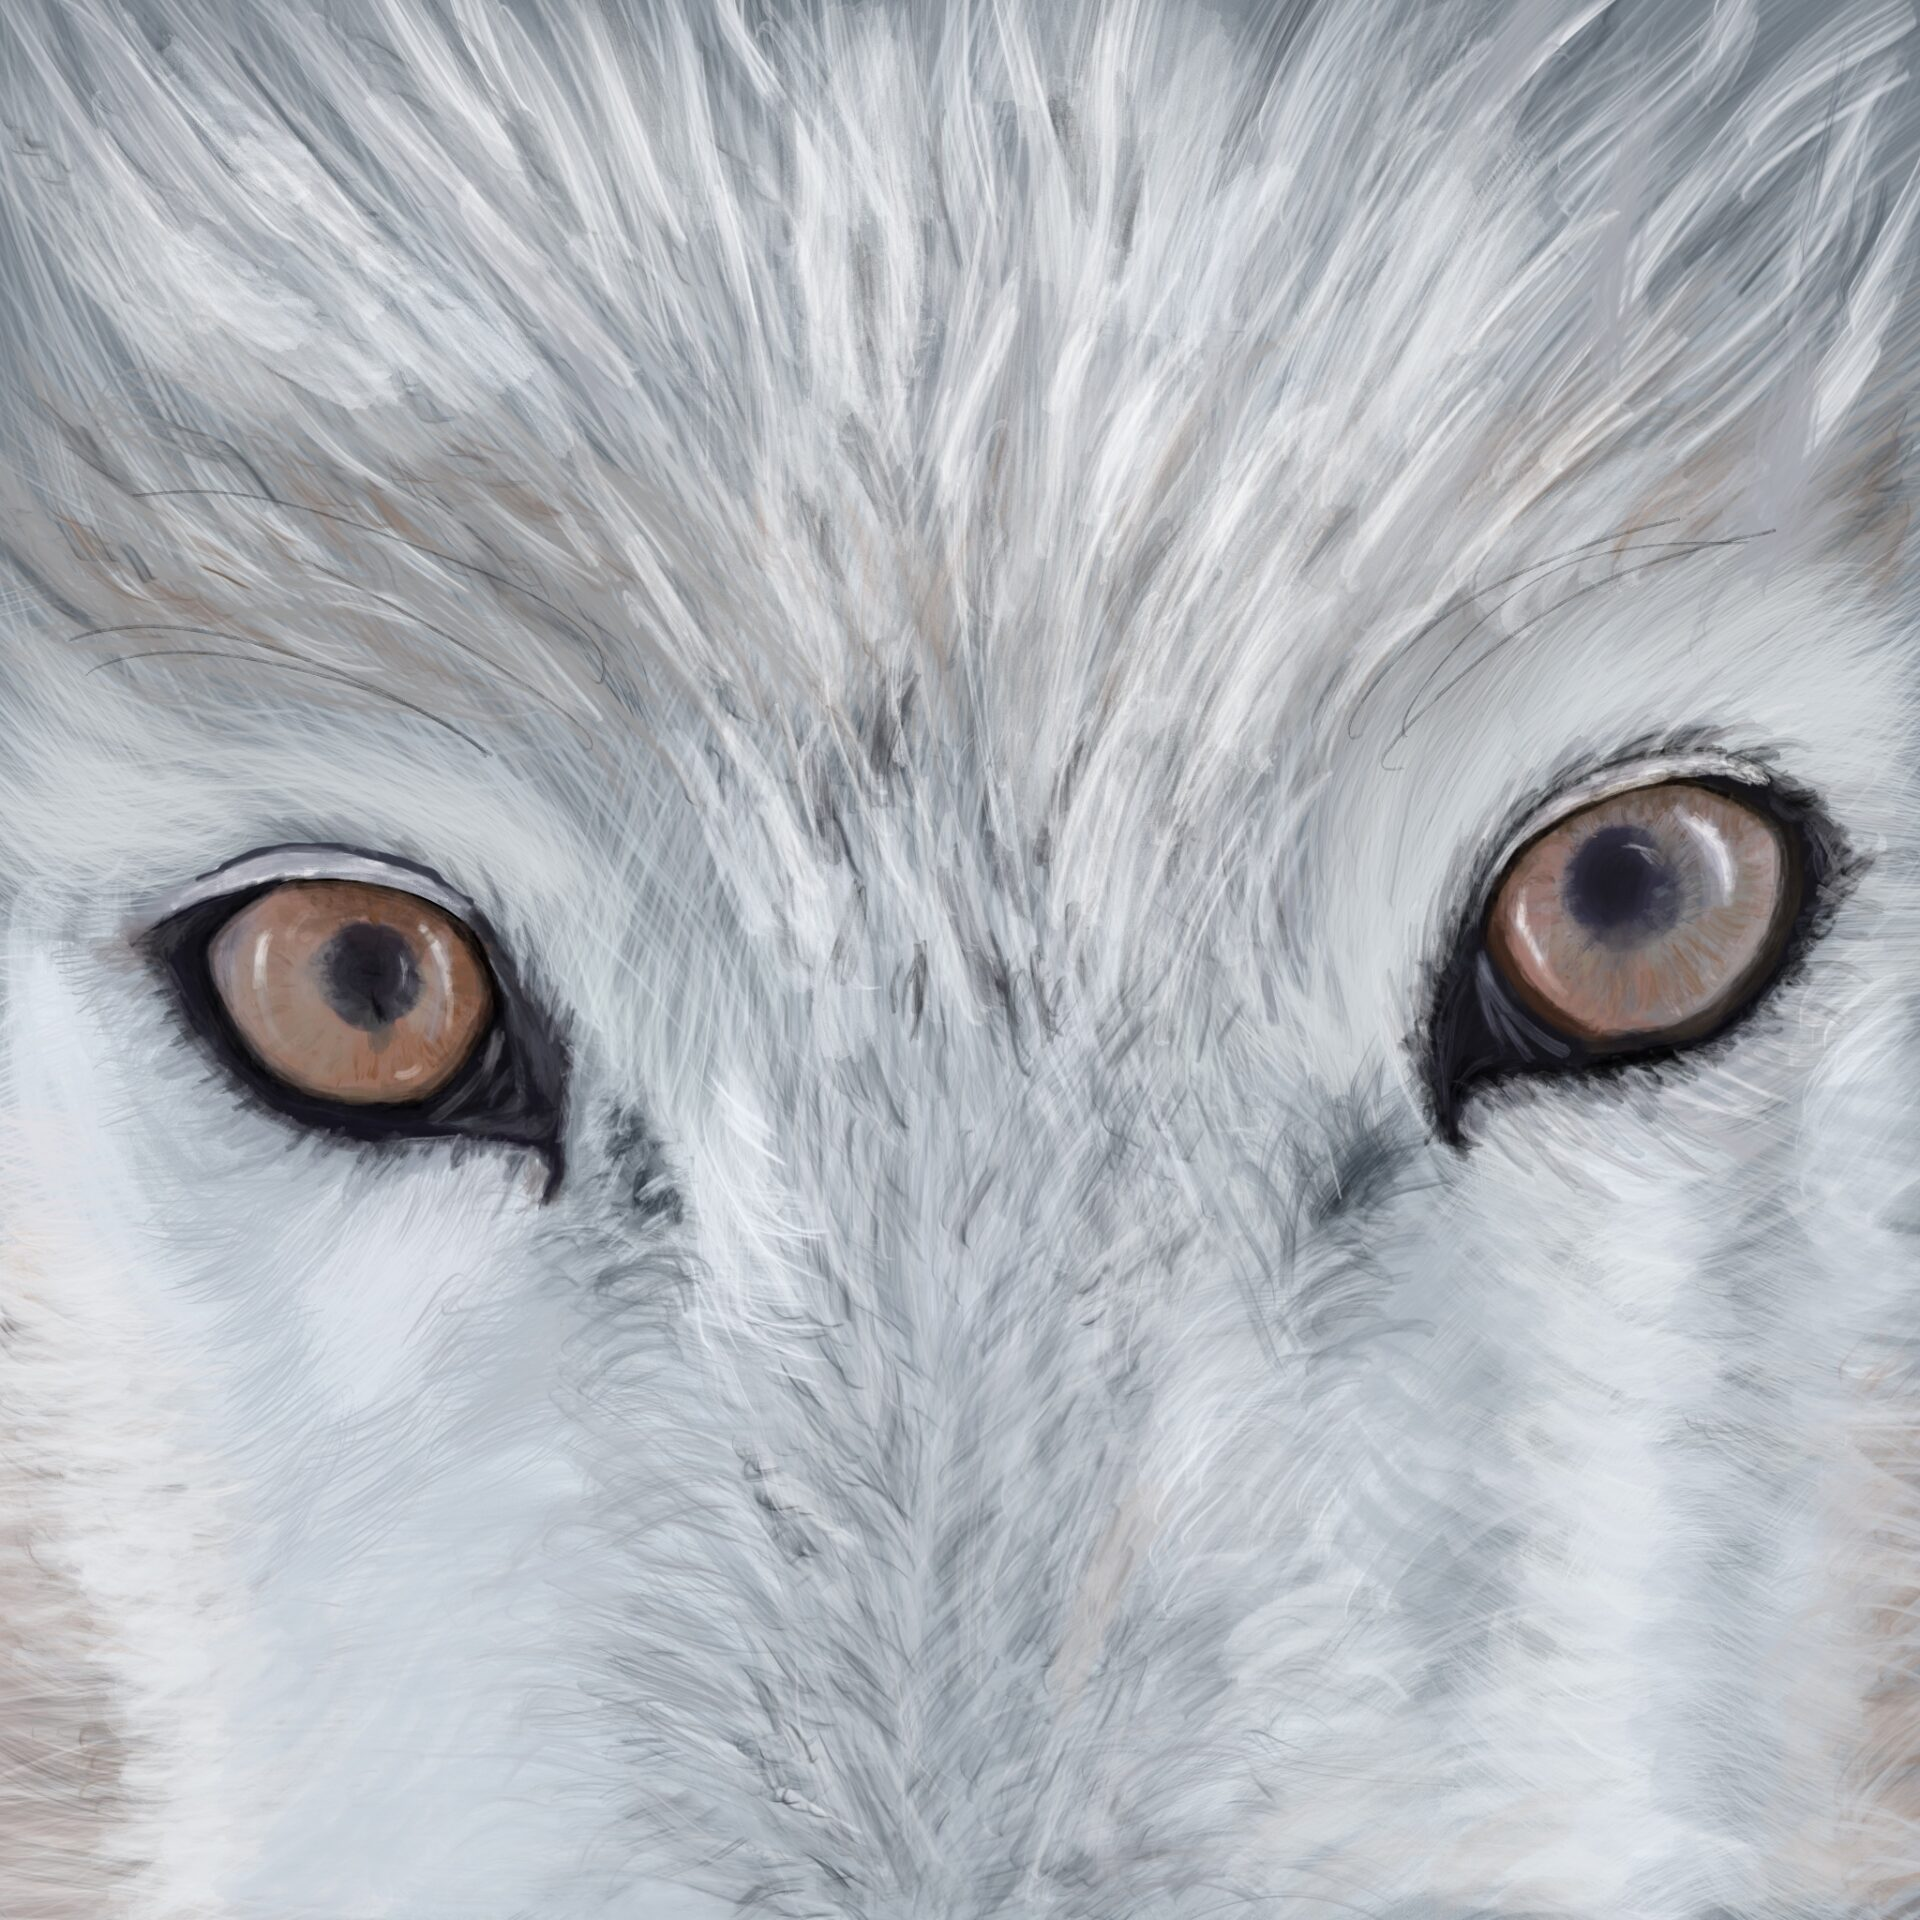 I See You a portrait of a wolf's eyes